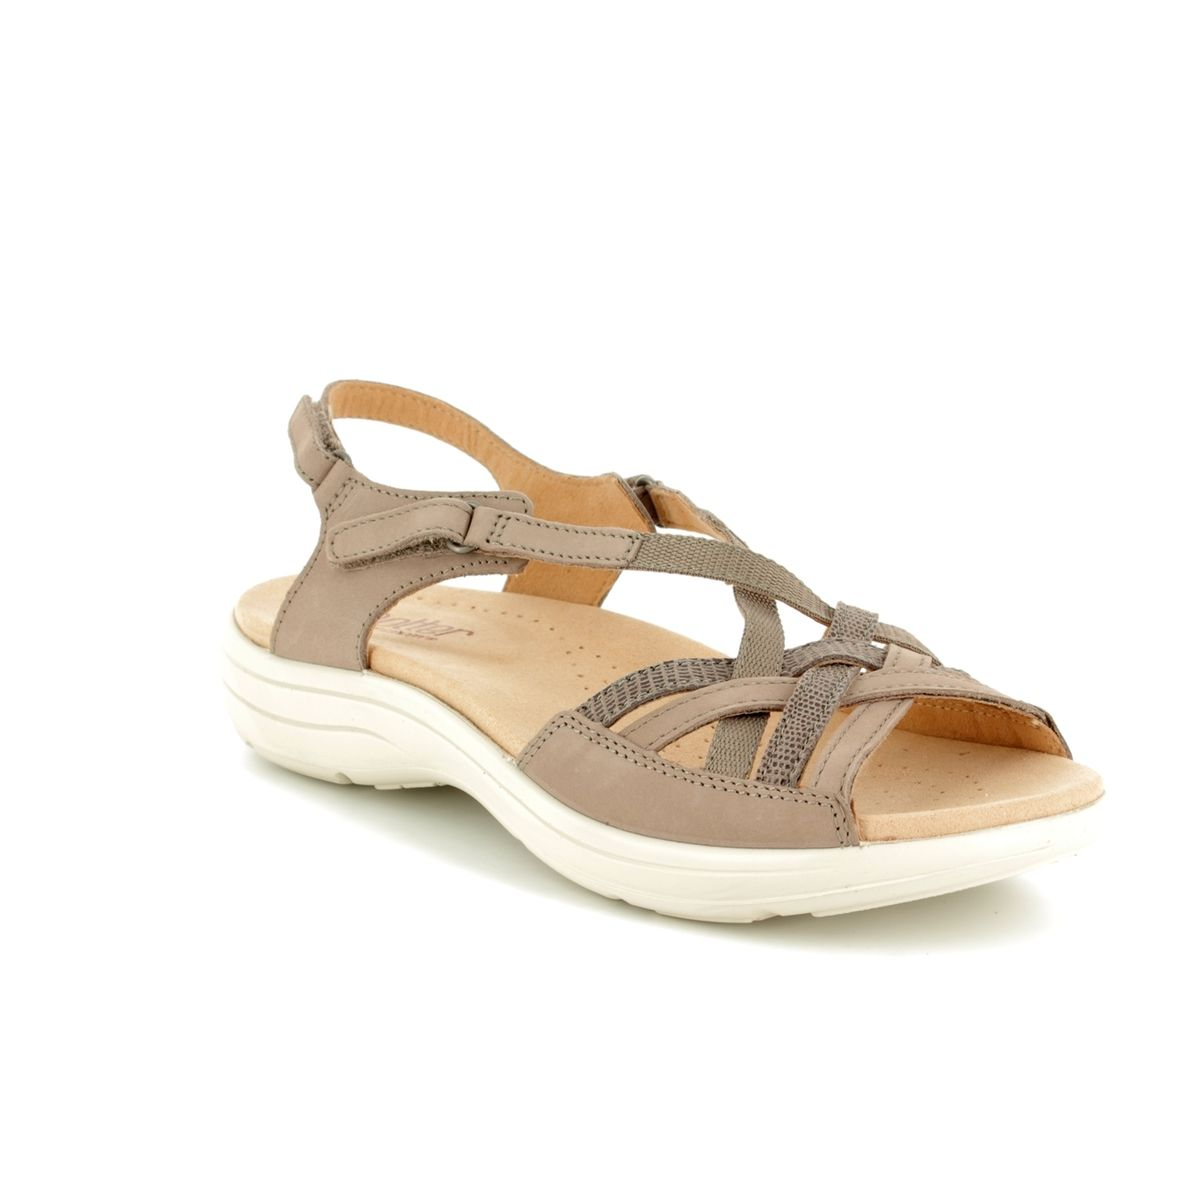 ce13a45fa8db Hotter Sandals - Taupe nubuck - 8109 53 MAISIE E FIT